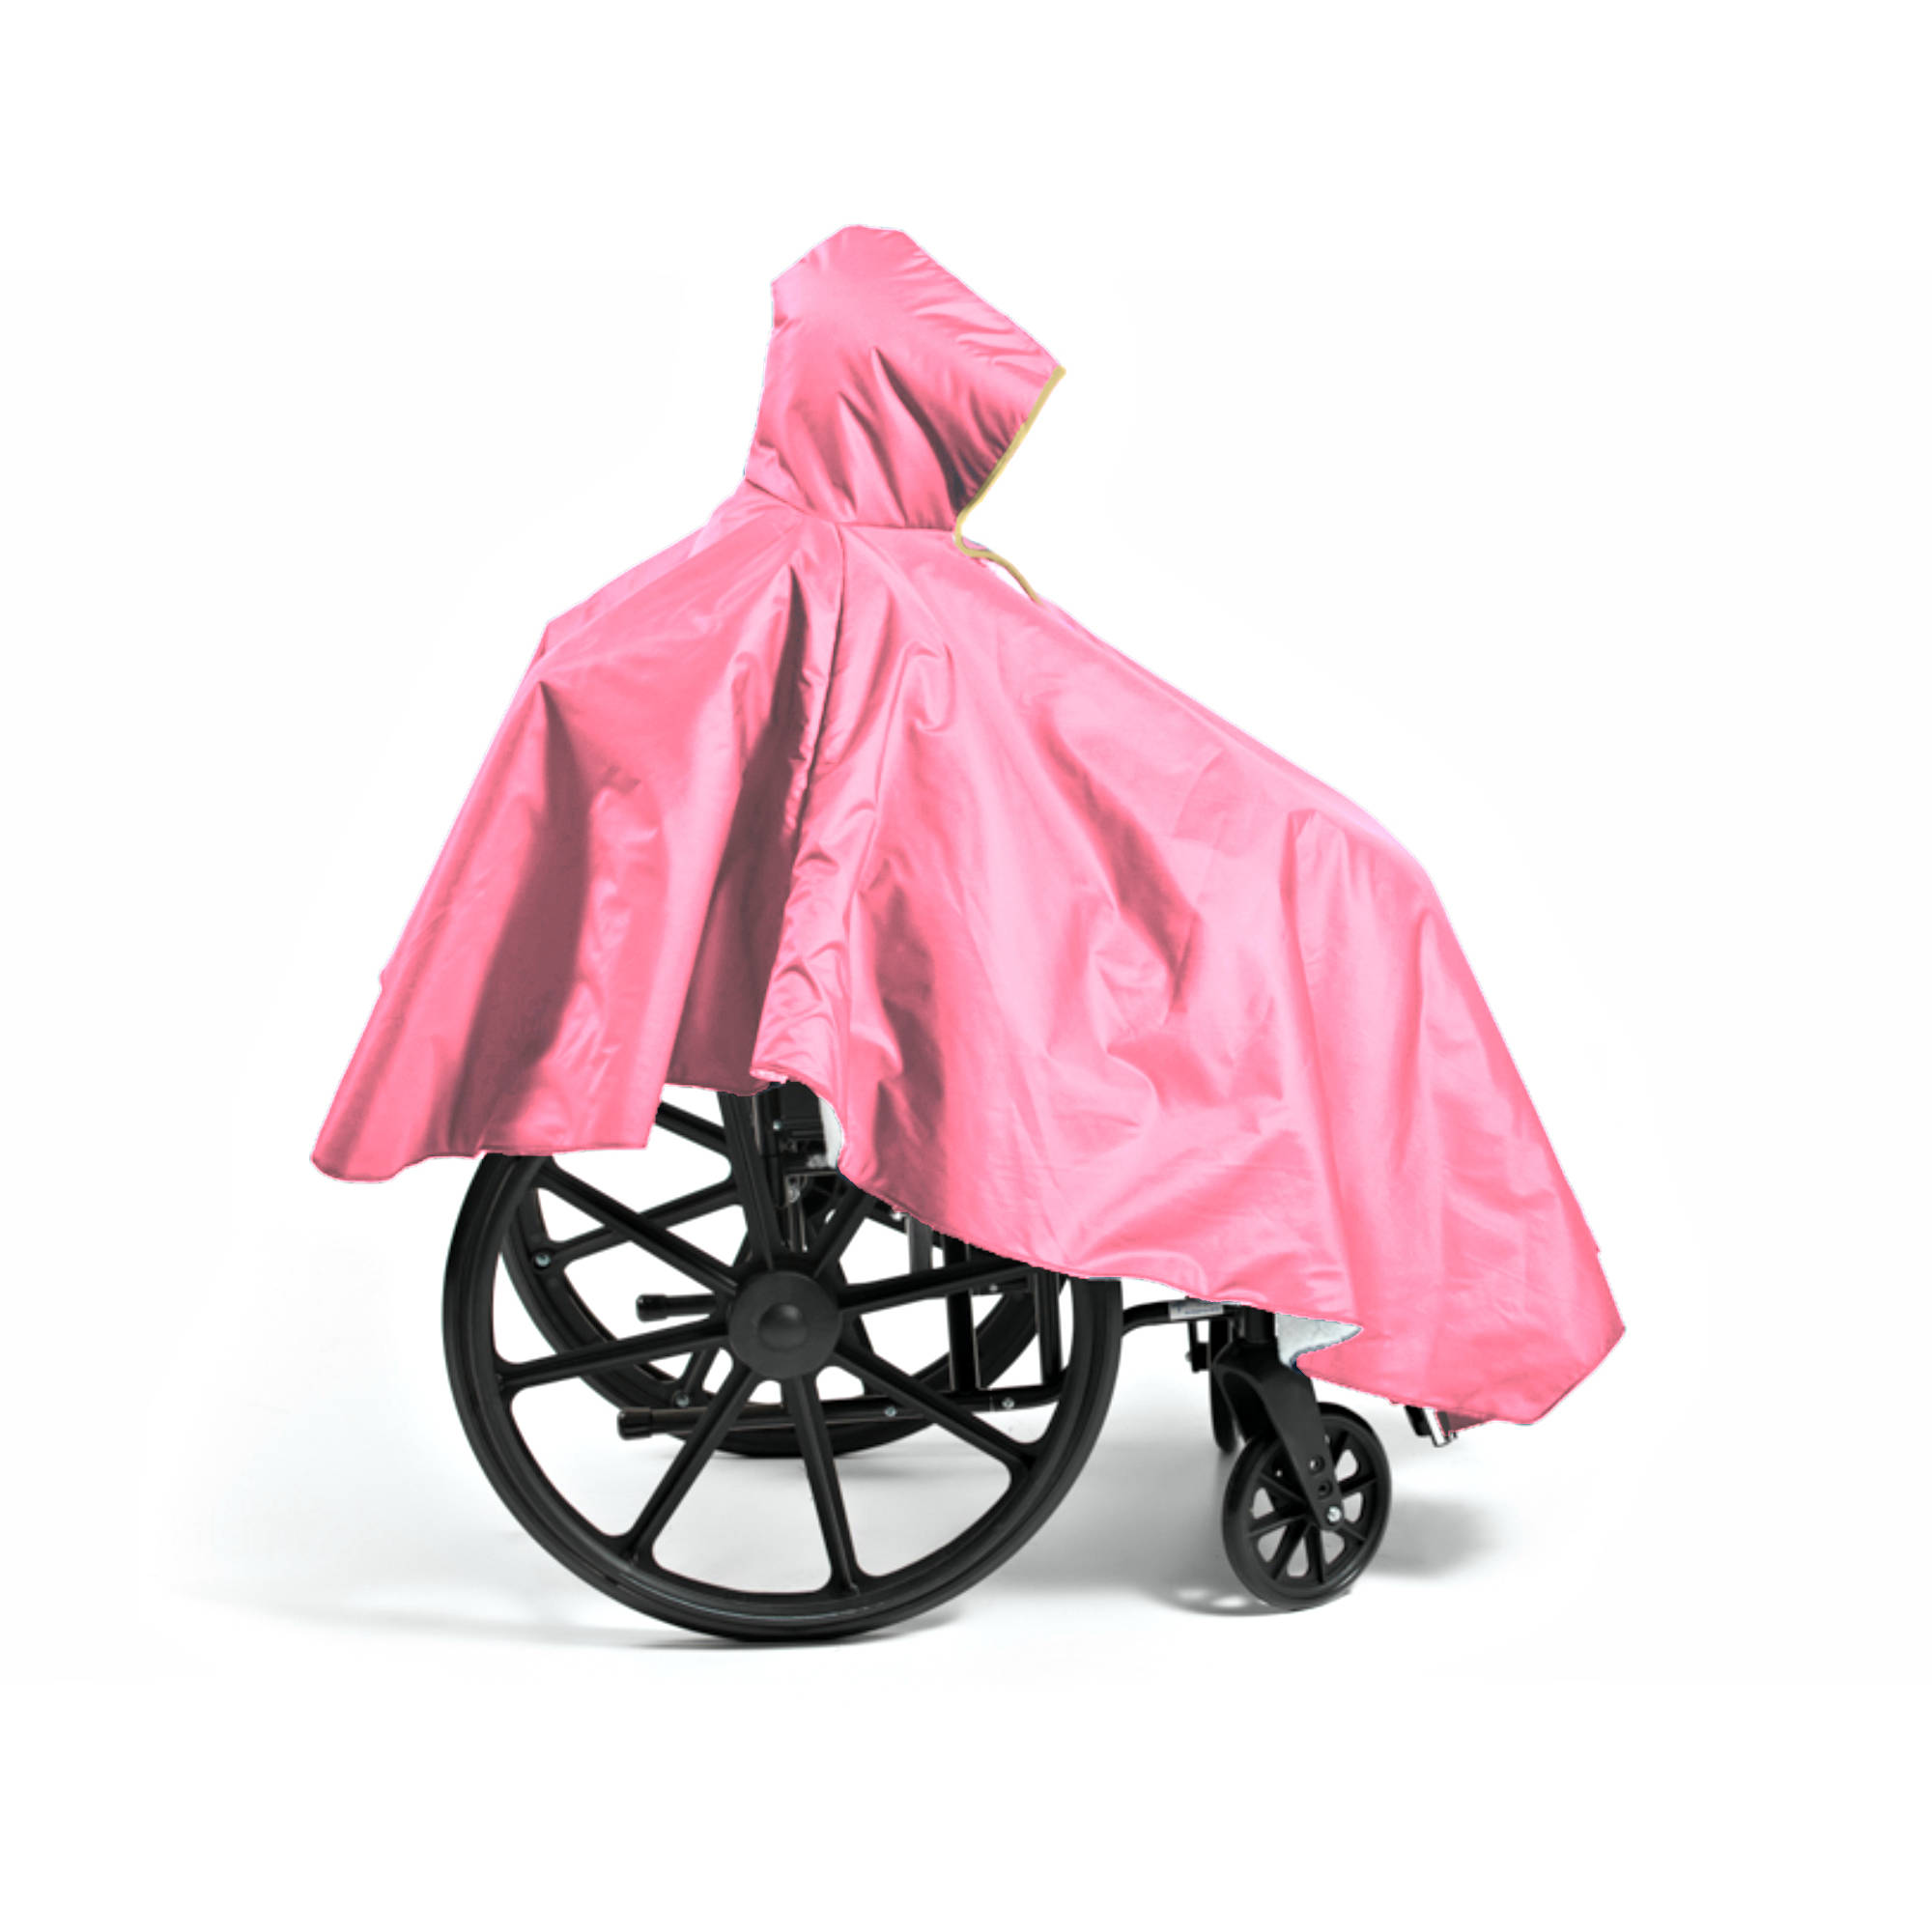 CareActive Wheelchair Winter Poncho, Baby Pink